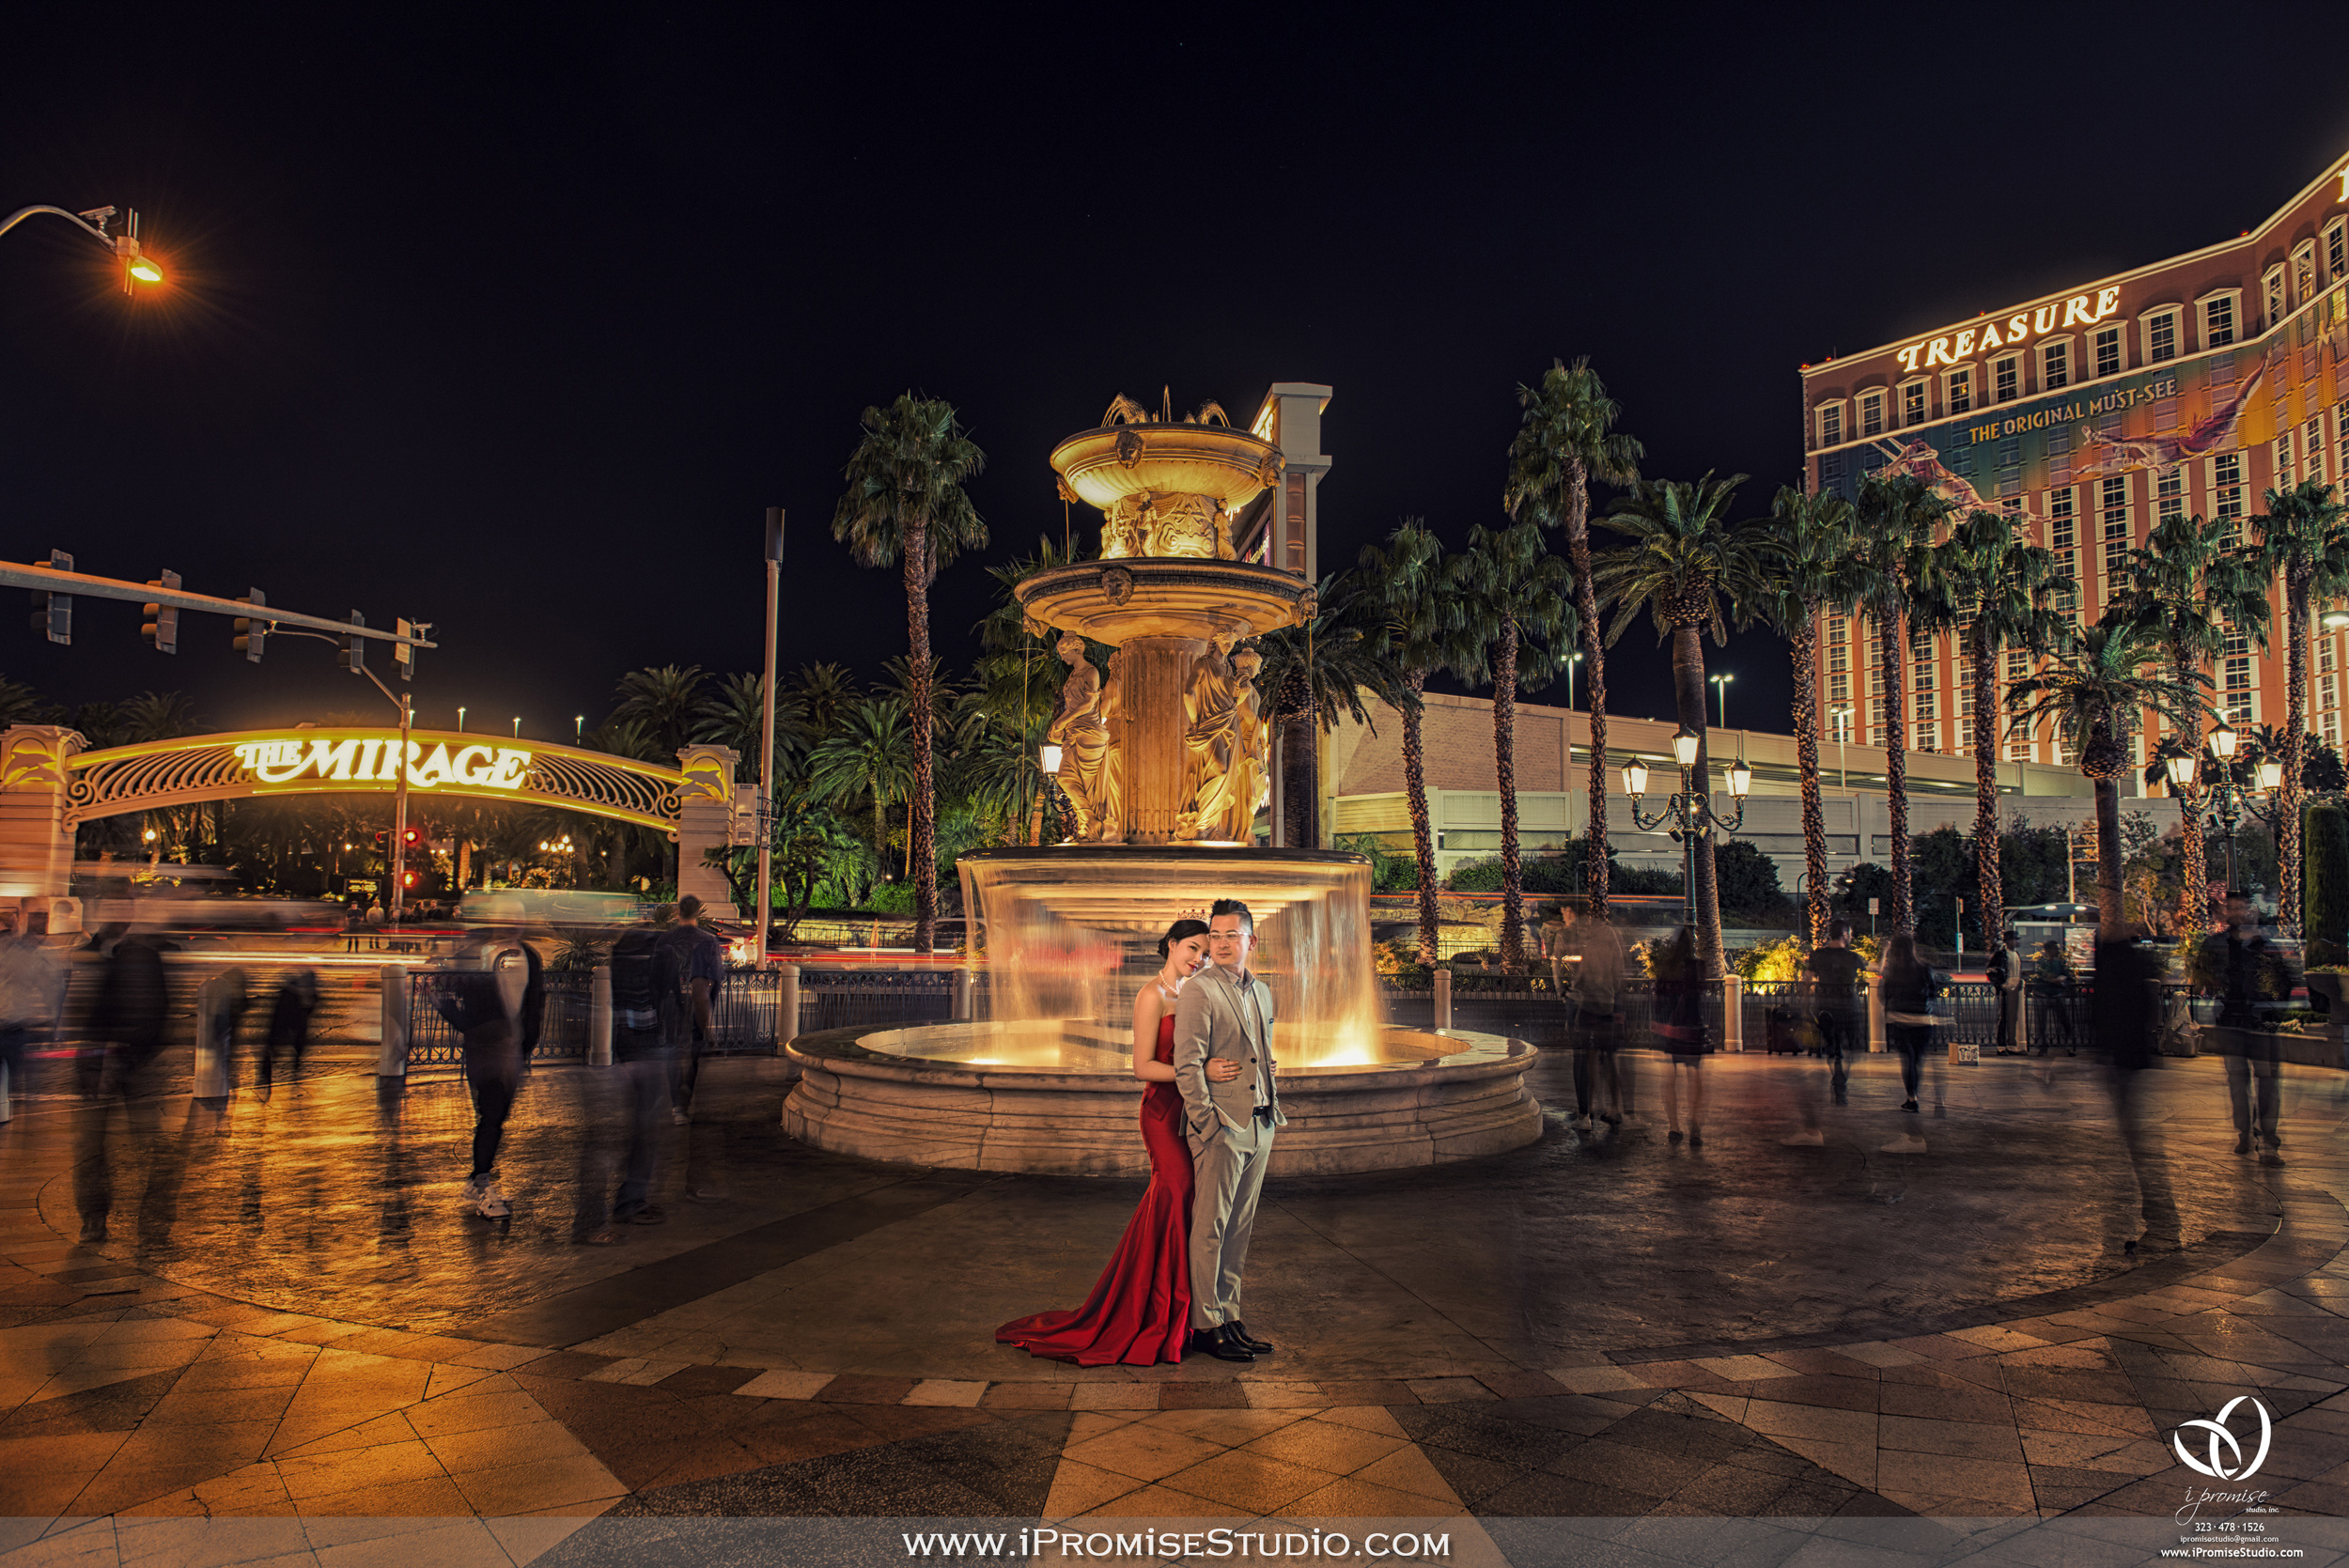 Las Vegas Blvd Treasure Island night view-engagement wedding 02.JPG